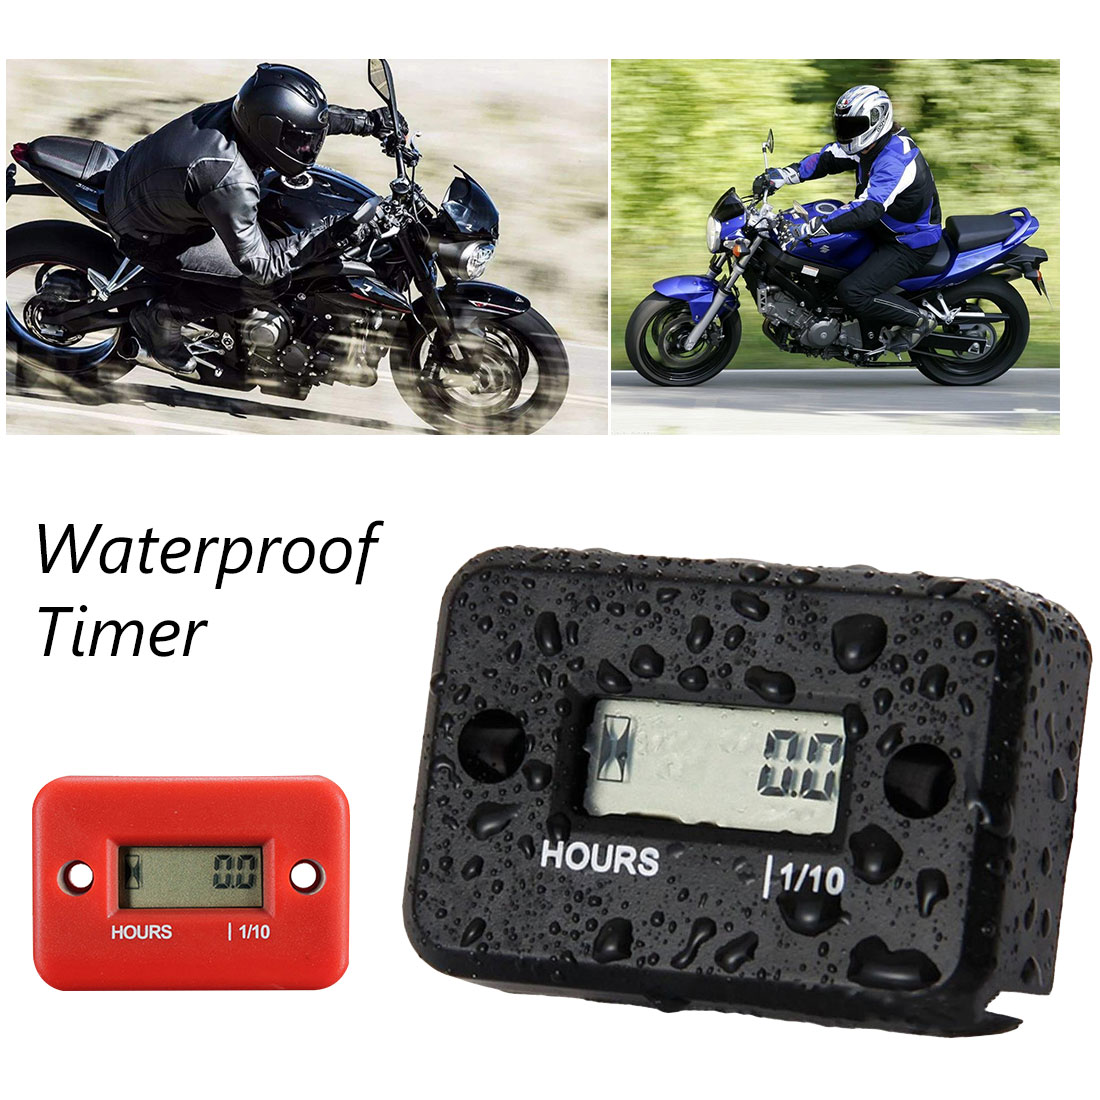 1pcs Waterproof LCD Display Digital Hour Meter Inductive Hour Meter Tachometer for Bike Motorcycle Snowmobile Marine Engine image